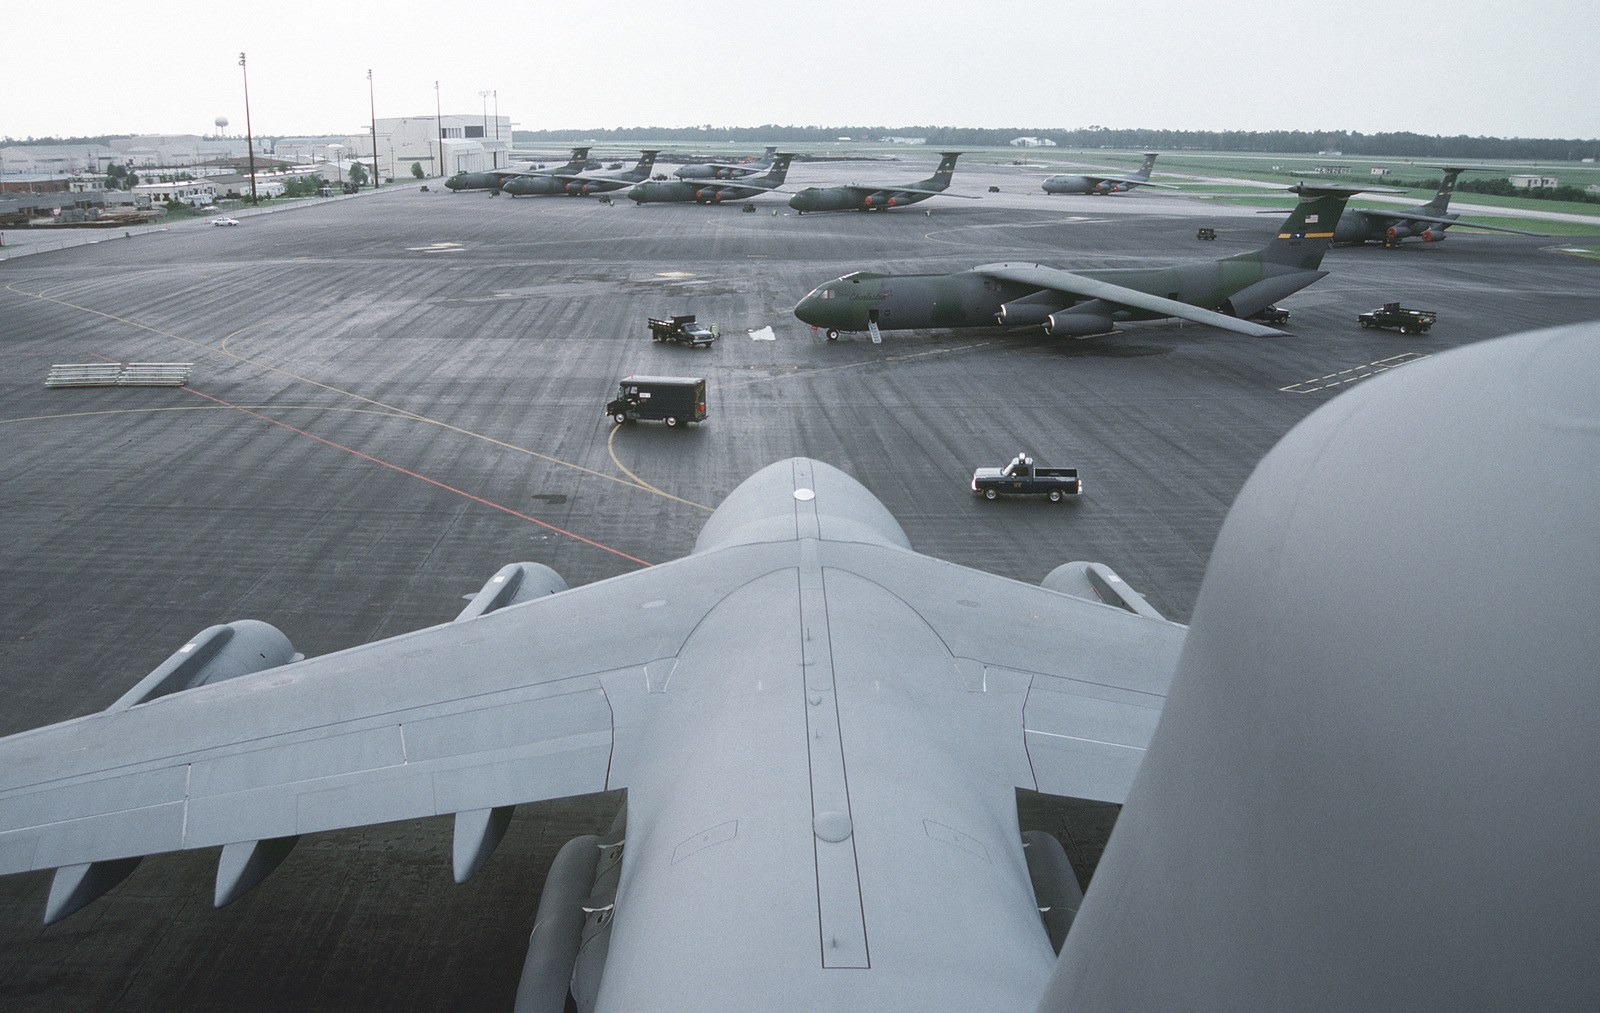 View from atop the vertical stabilizer of the first C-17 Globemaster III, in the Air Force inventory, showing the flightline and numerous C-141B Starlifters assigned to the 437th Airlift Wing